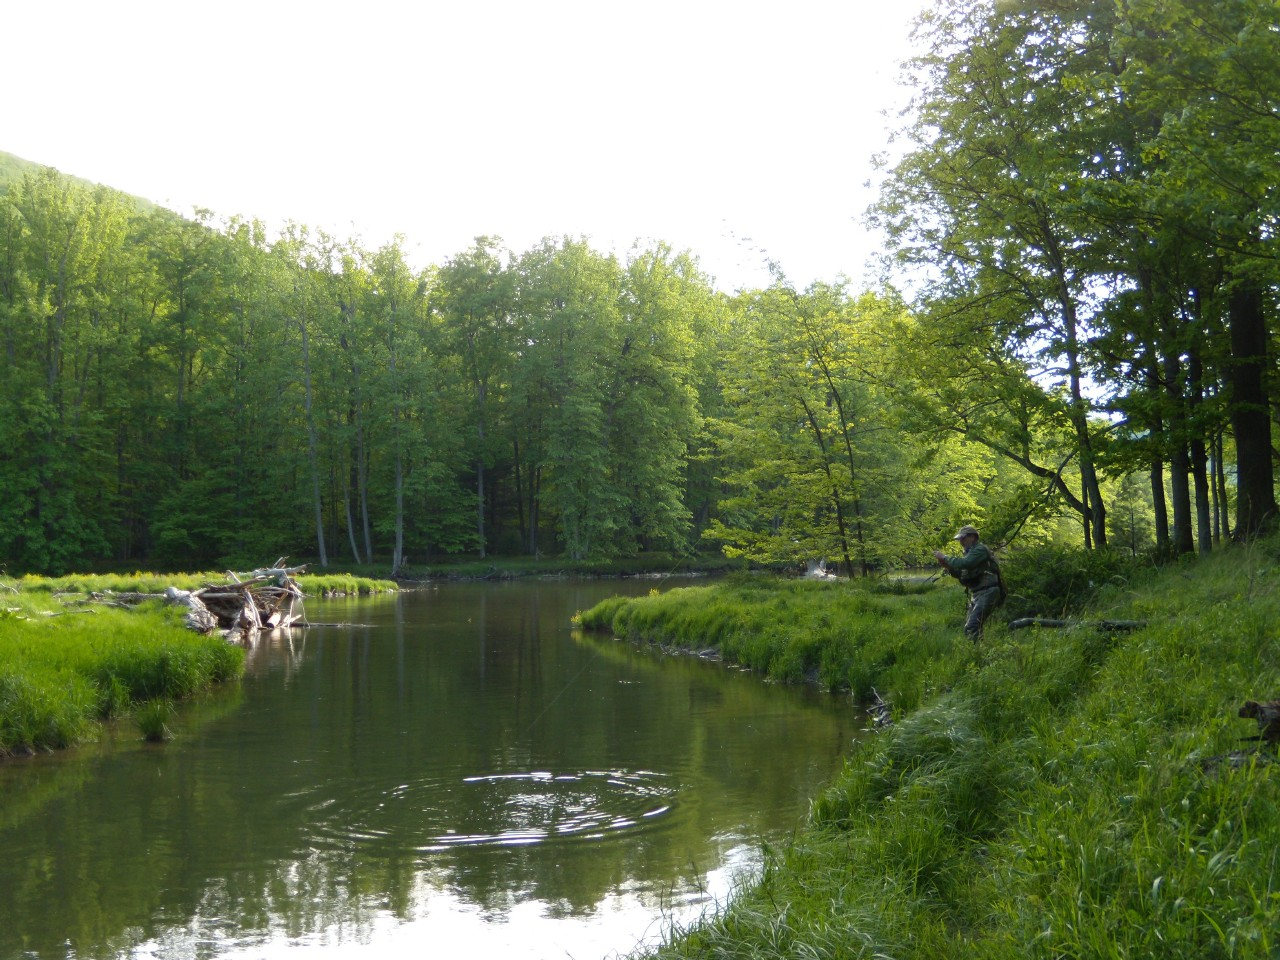 penns creek men Guided fly fishing tco offers fly fishing guide services in a full or half day format for trout, smallmouth bass, steelhead, northern pike, carp and anything else that swims you'll find our guides to be both knowledgeable and friendly with a focus on education.